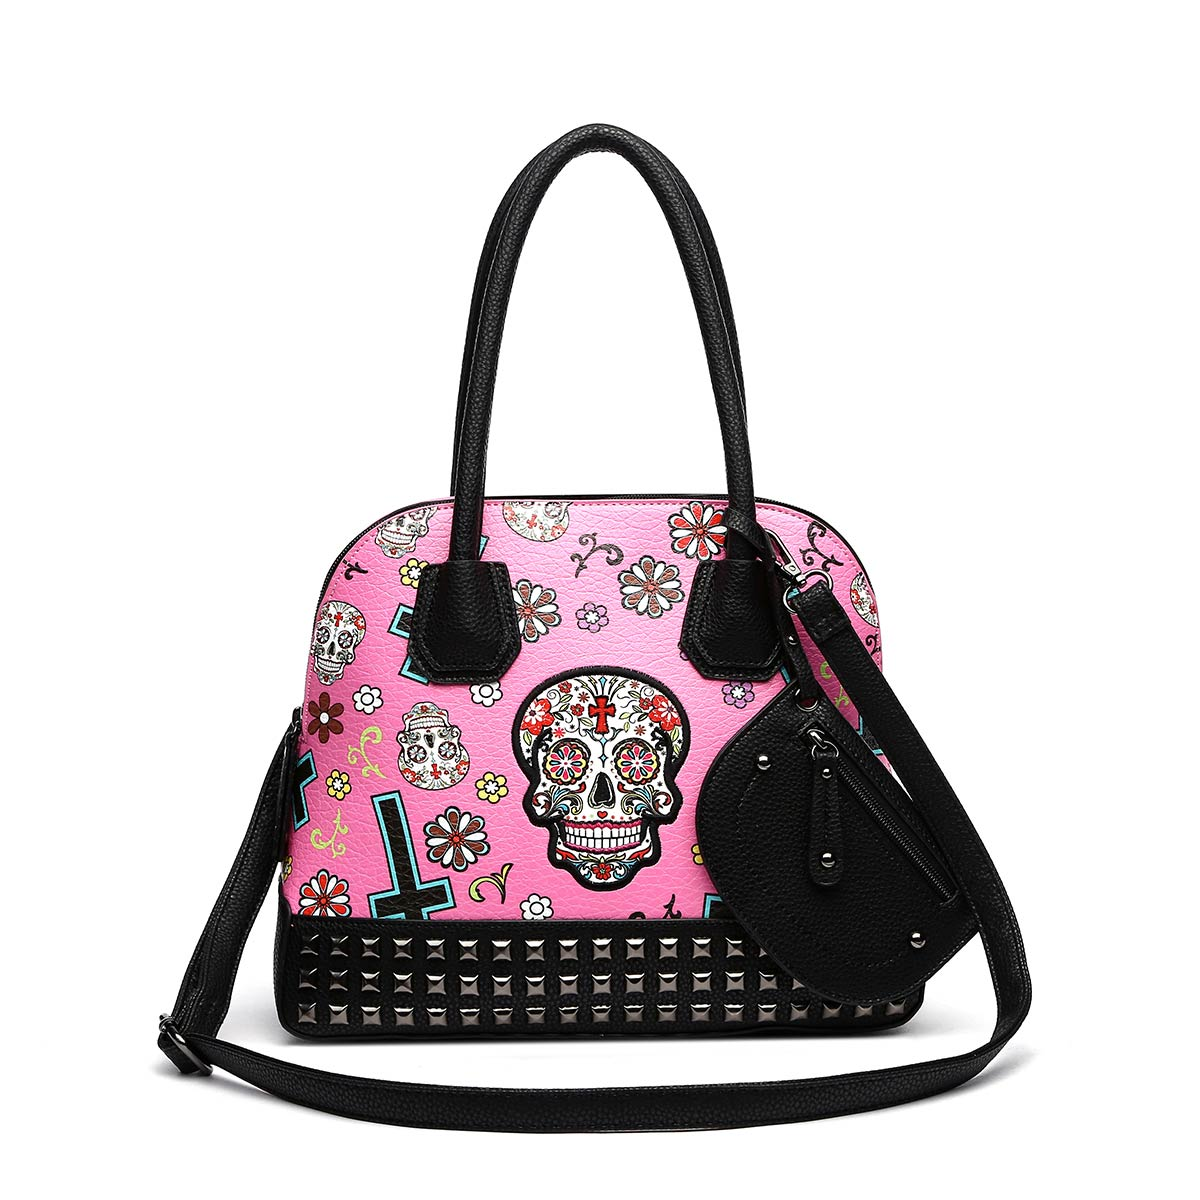 'Skull & Cross' Print With Coin Wallet Fuchsia